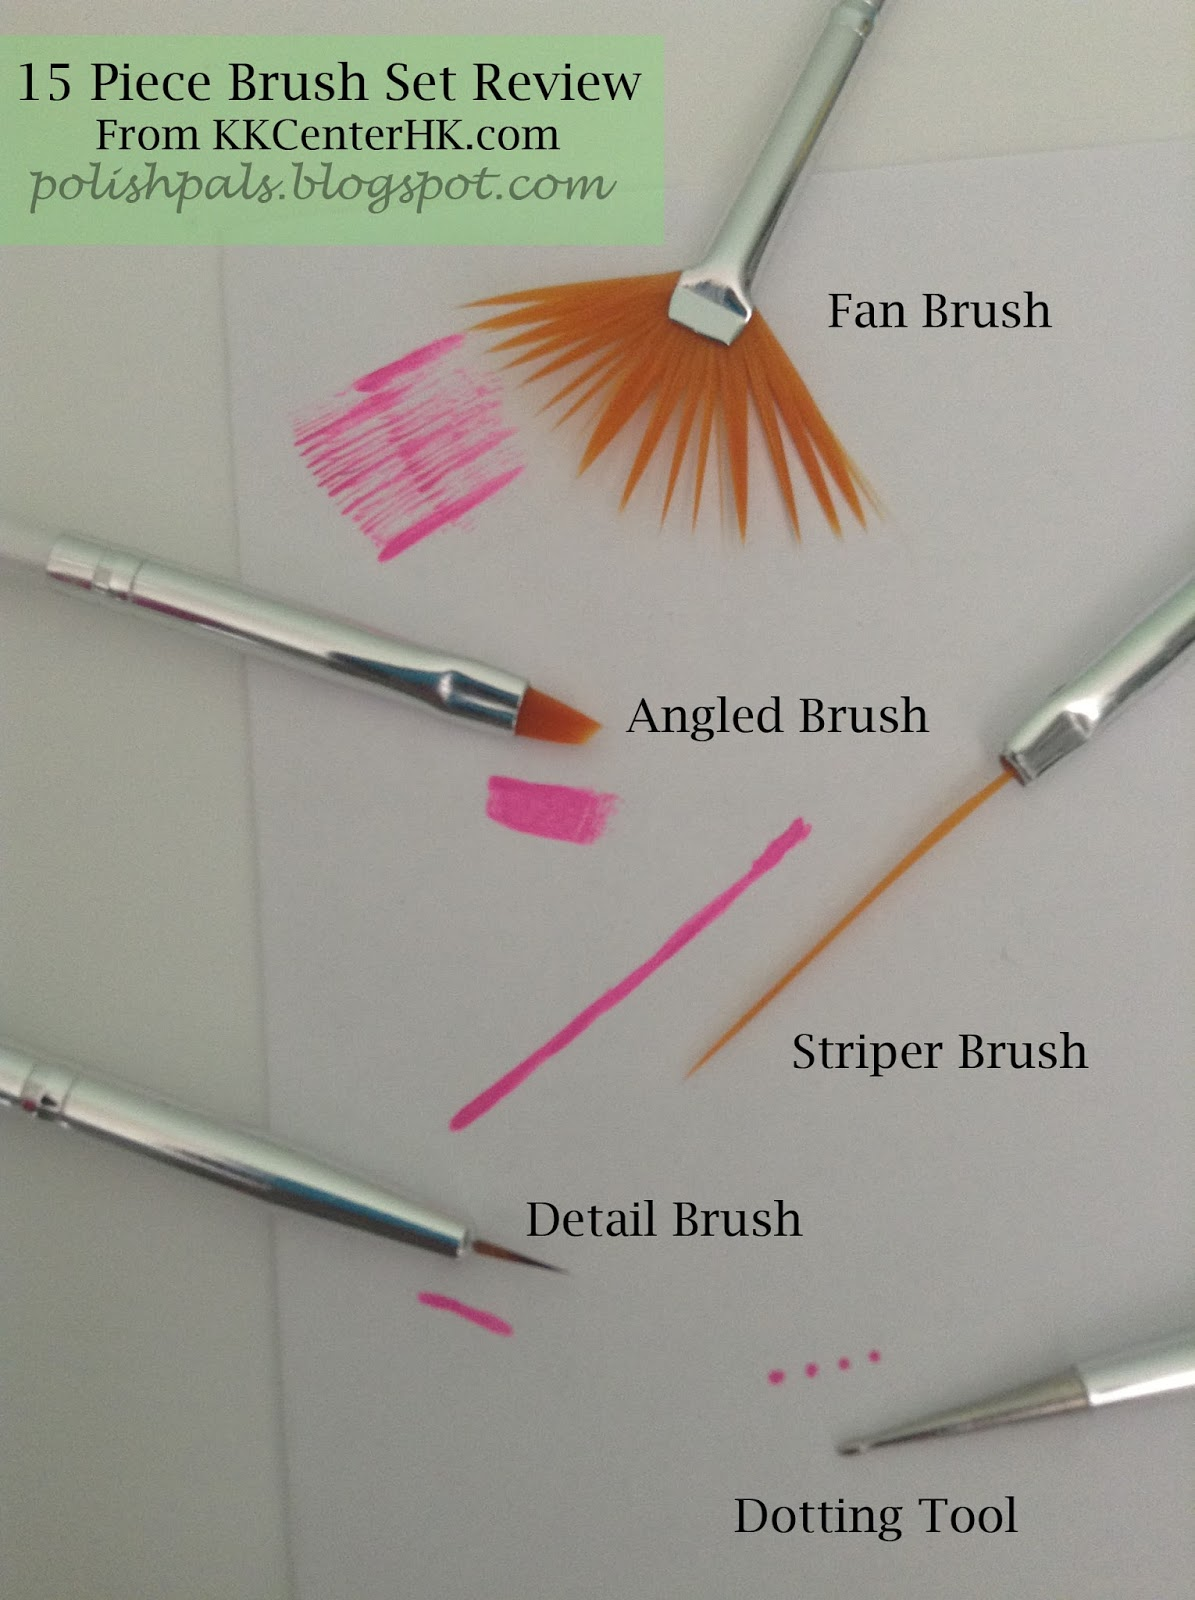 Polish Pals: FAQ: Nail Art Brushes